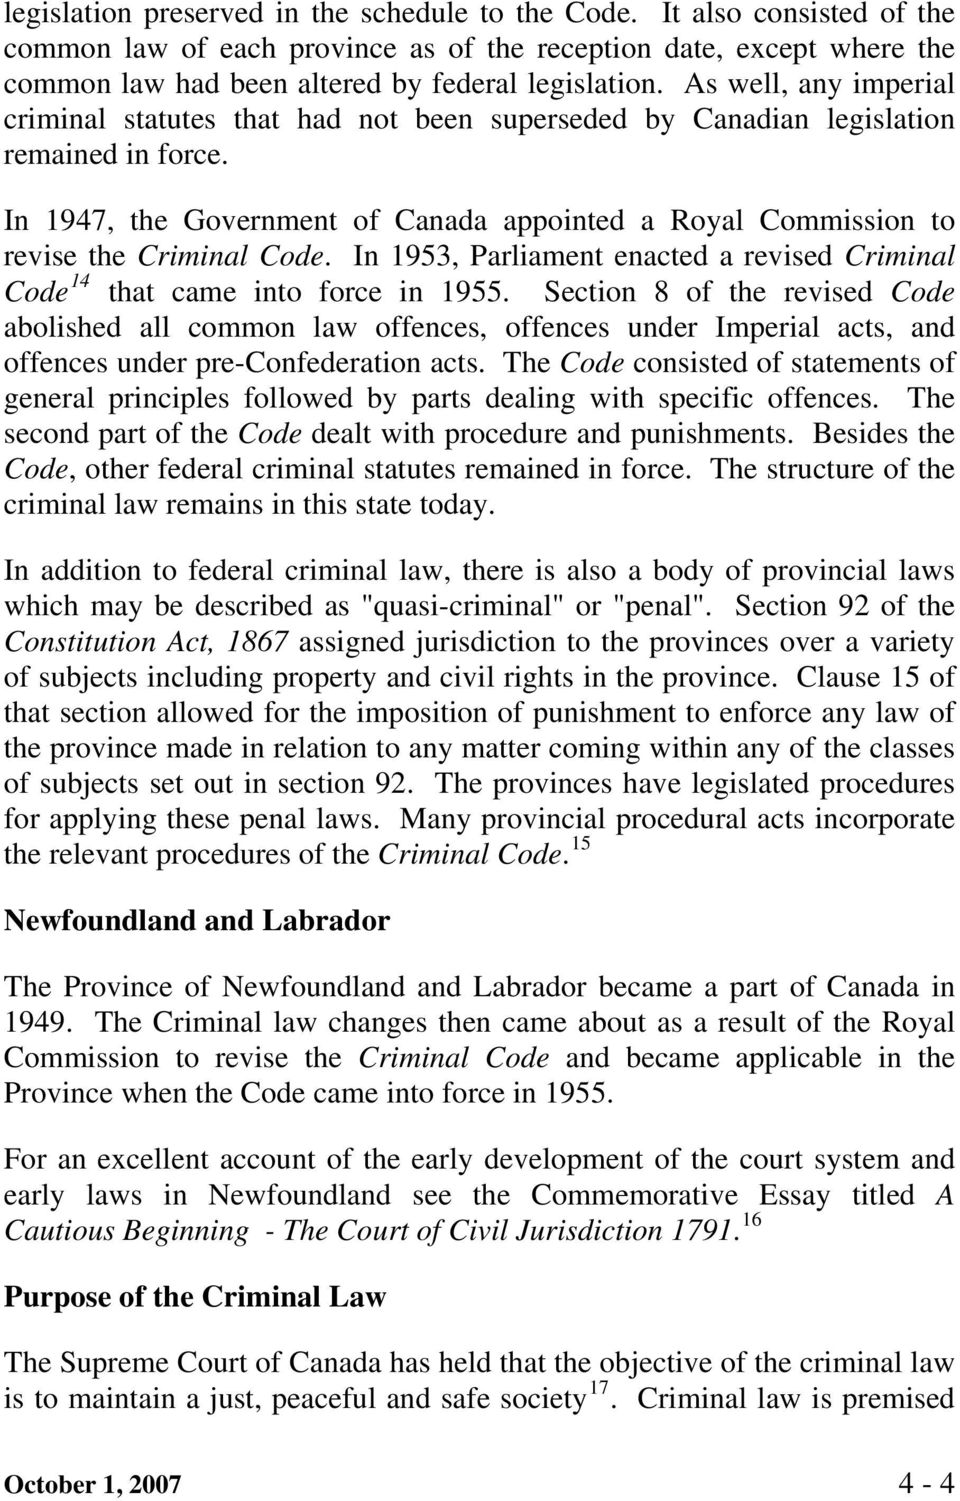 In 1947, the Government of Canada appointed a Royal Commission to revise the Criminal Code. In 1953, Parliament enacted a revised Criminal Code 14 that came into force in 1955.